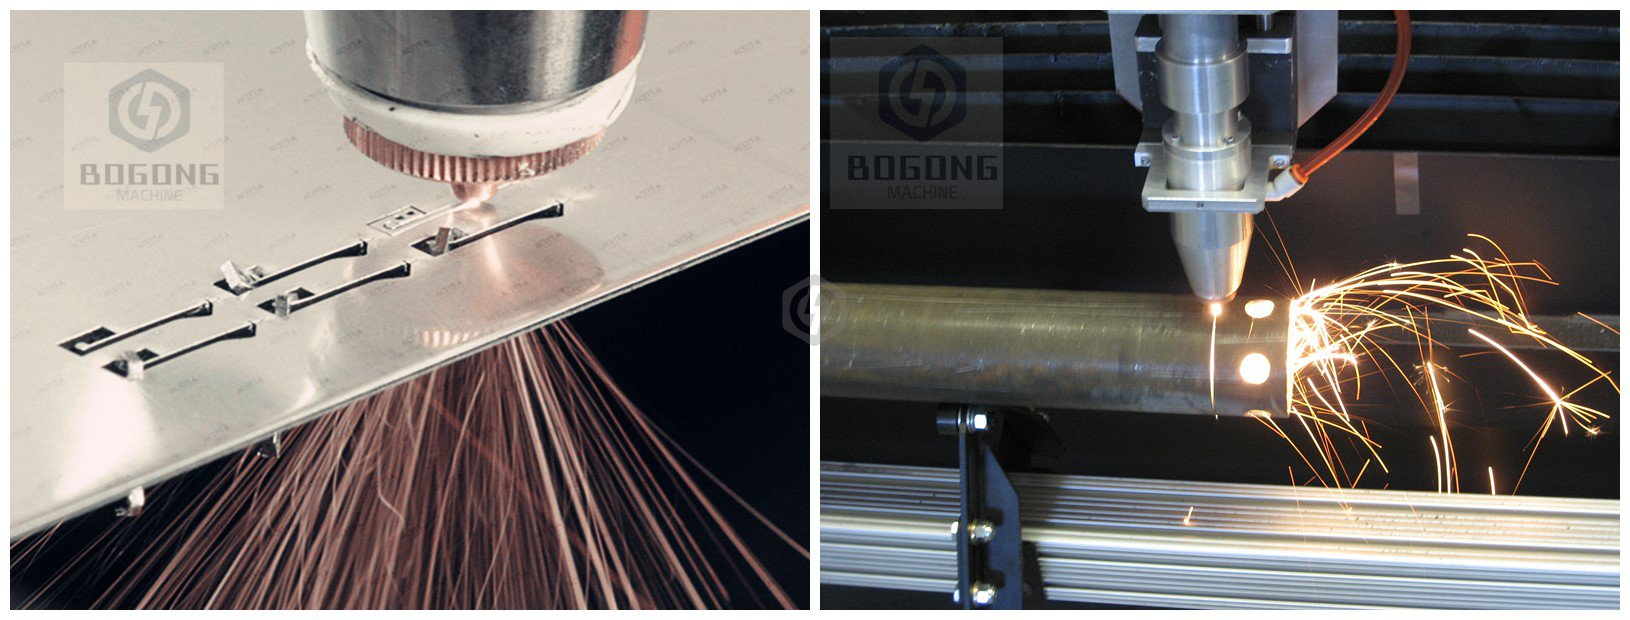 plate and tube laser cutting machine